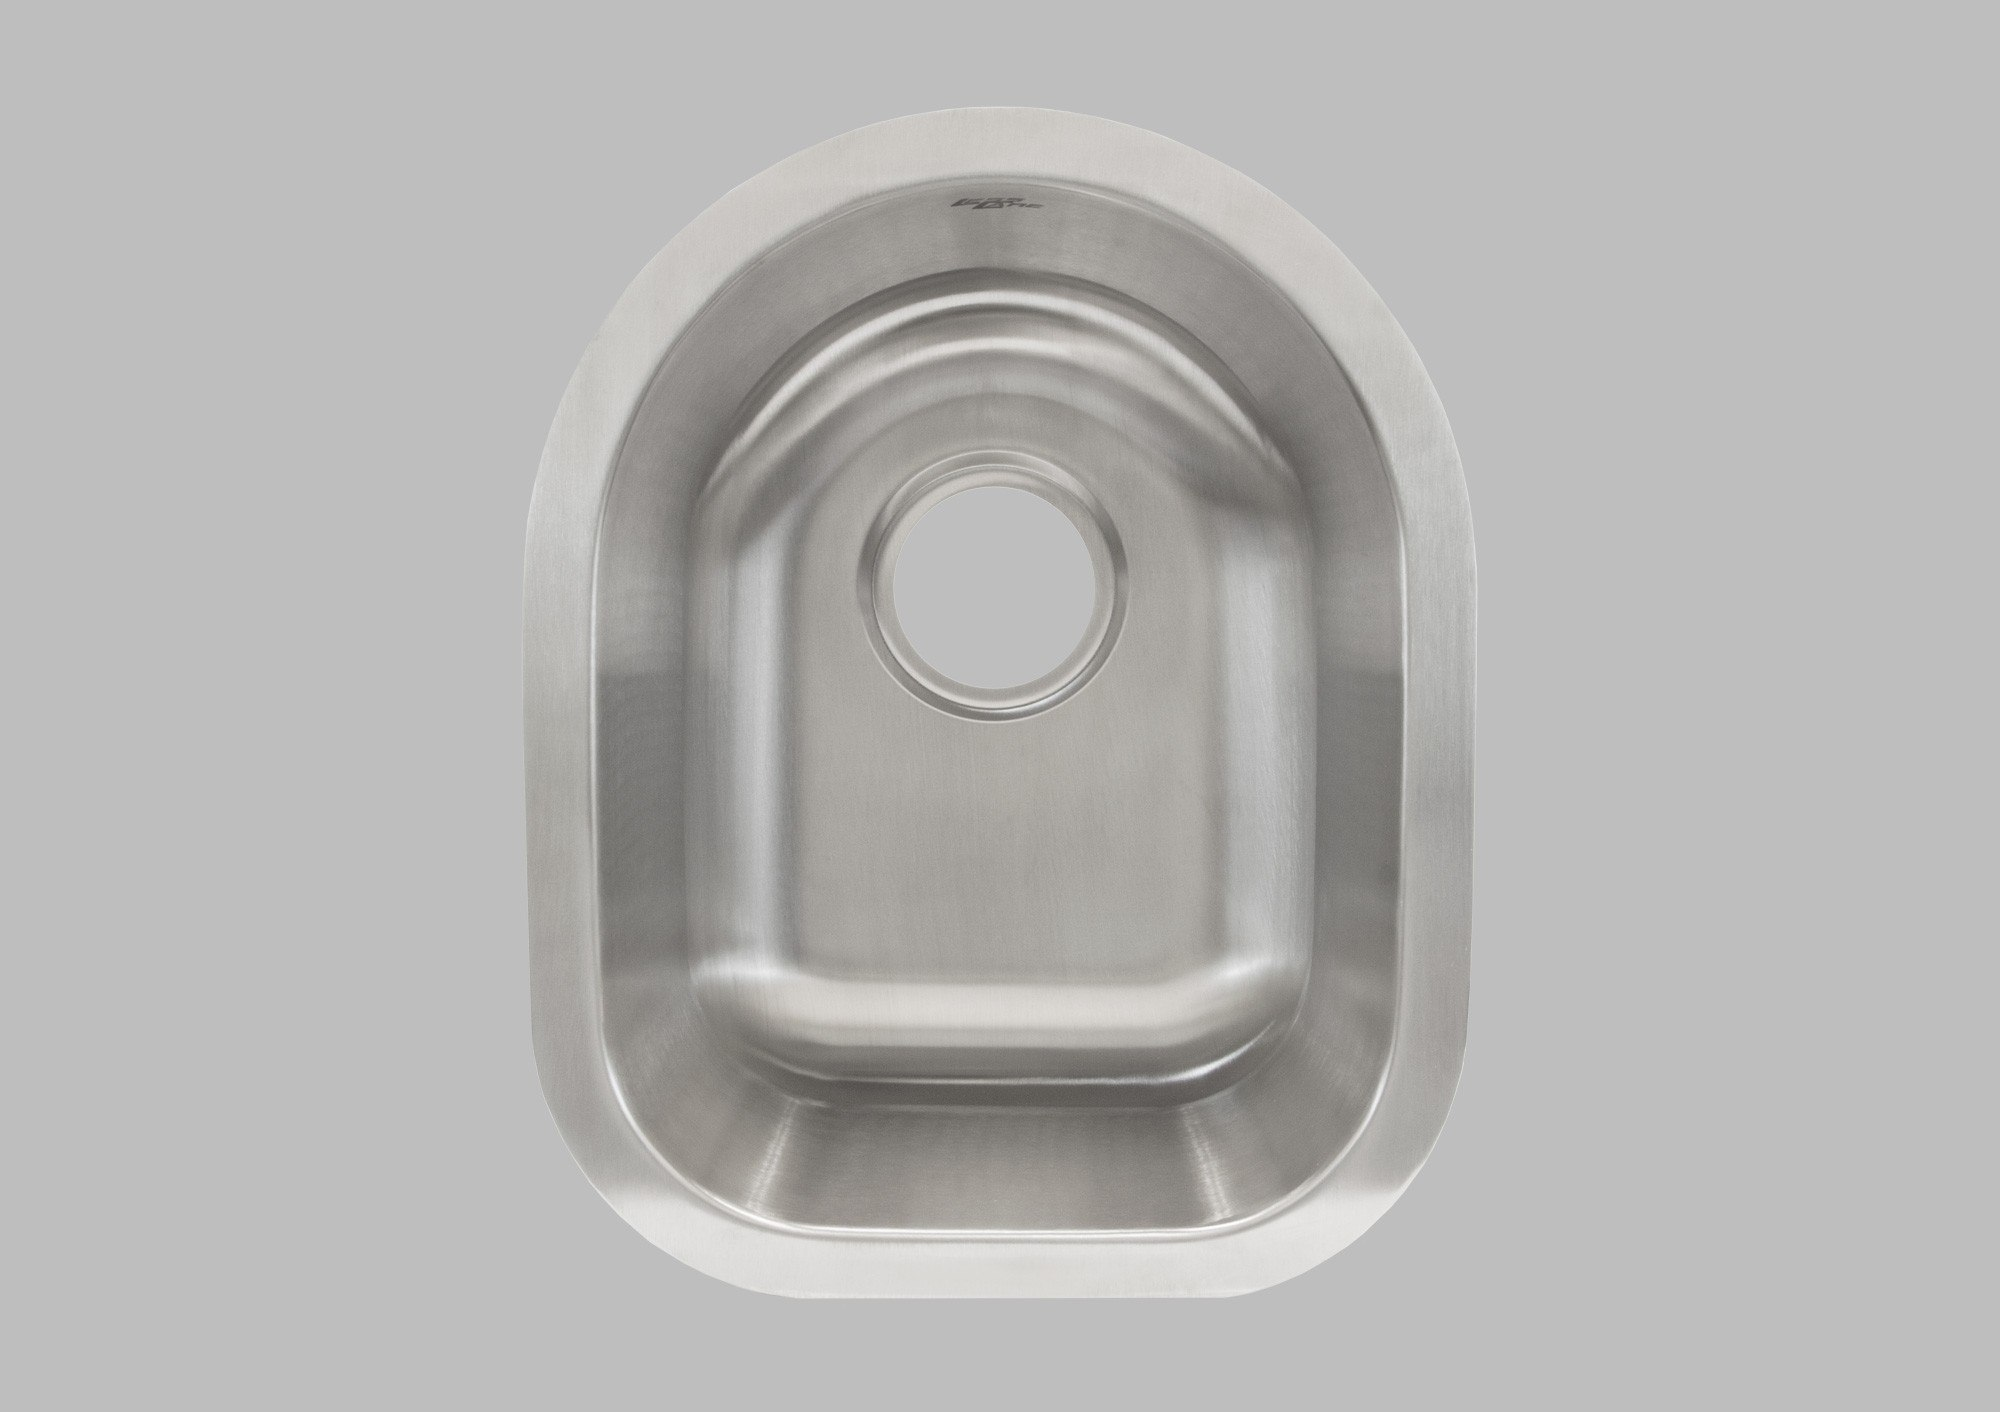 LESS CARE L104 13 INCH UNDERMOUNT SINGLE BOWL BAR SINK